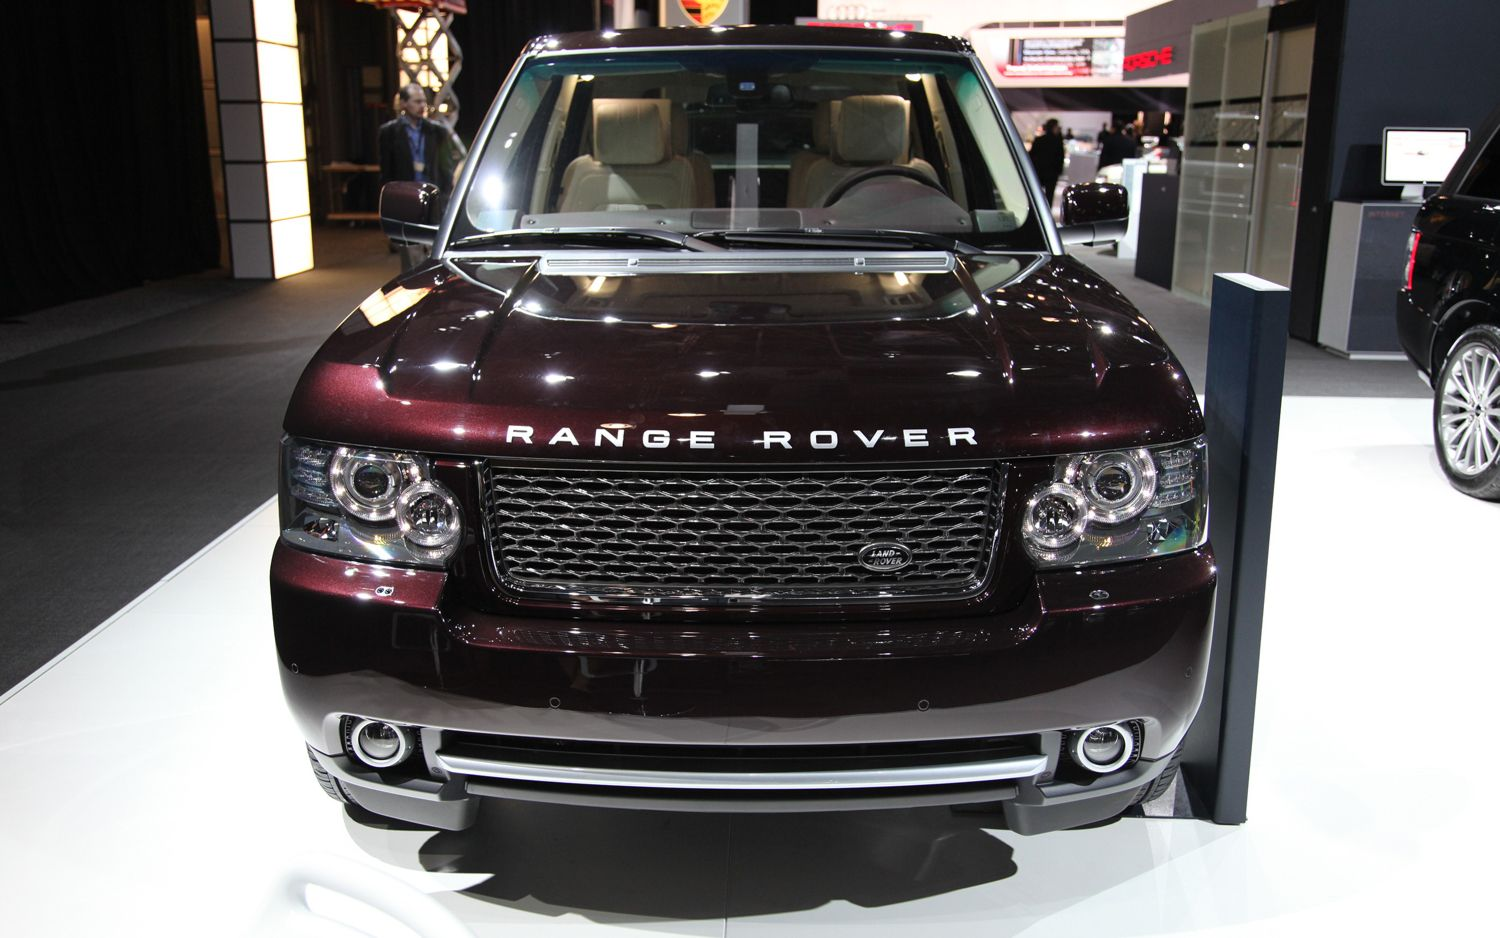 We Hear: Land Rover Planning Ultra-Lux Range Rover to Fight Bentley ...